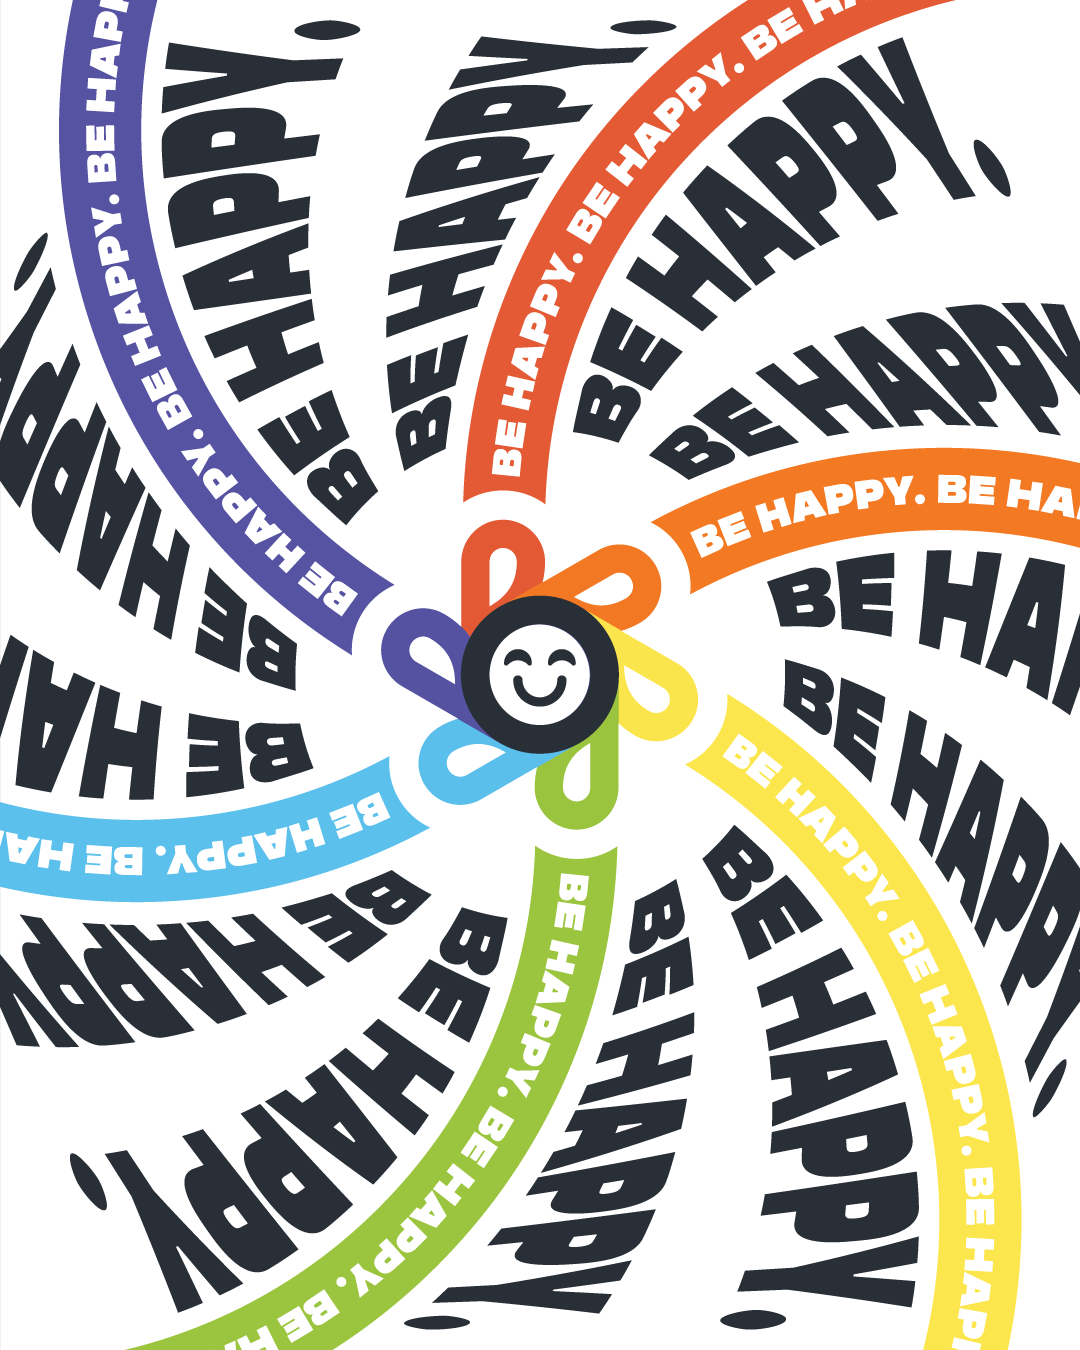 This was my first attempt at creating exciting advertising material for my business. I chose Be Happy because I believe it to be my best design so far and I wanted to experiment with text-wrapping in Adobe Illustrator. In fact, I enjoyed this design so much I ordered a print of it. (https://bybrice.com/products/be-happy)